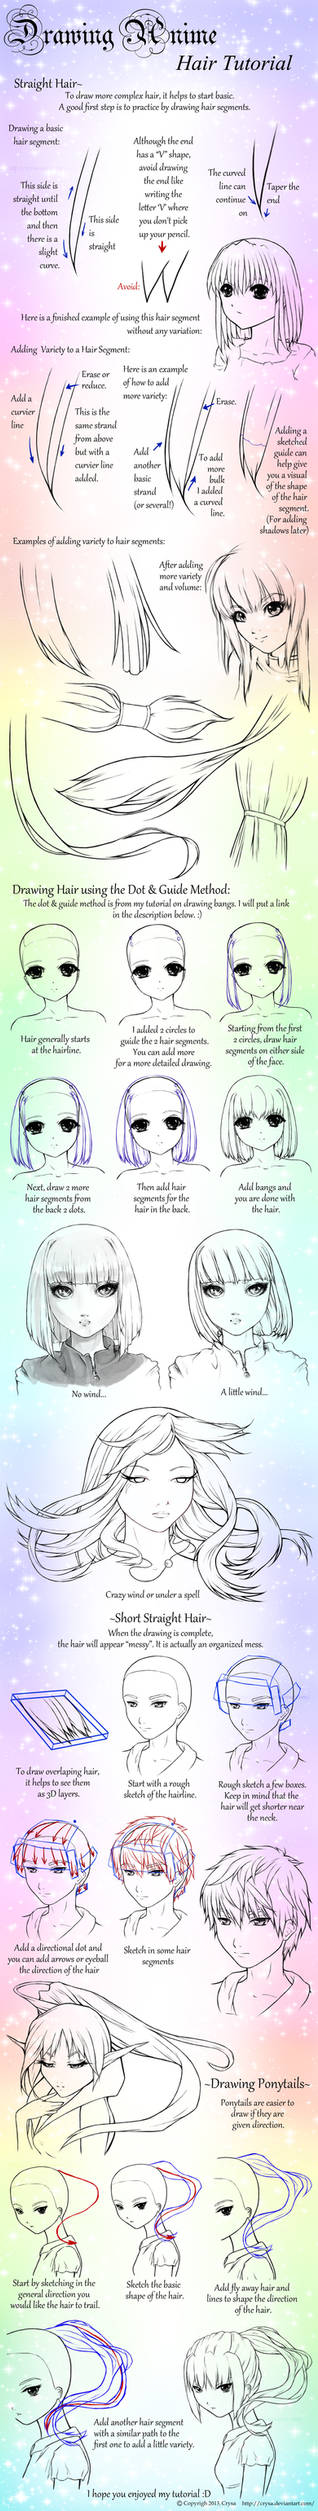 Drawing Anime: Straight Hair and Ponytails